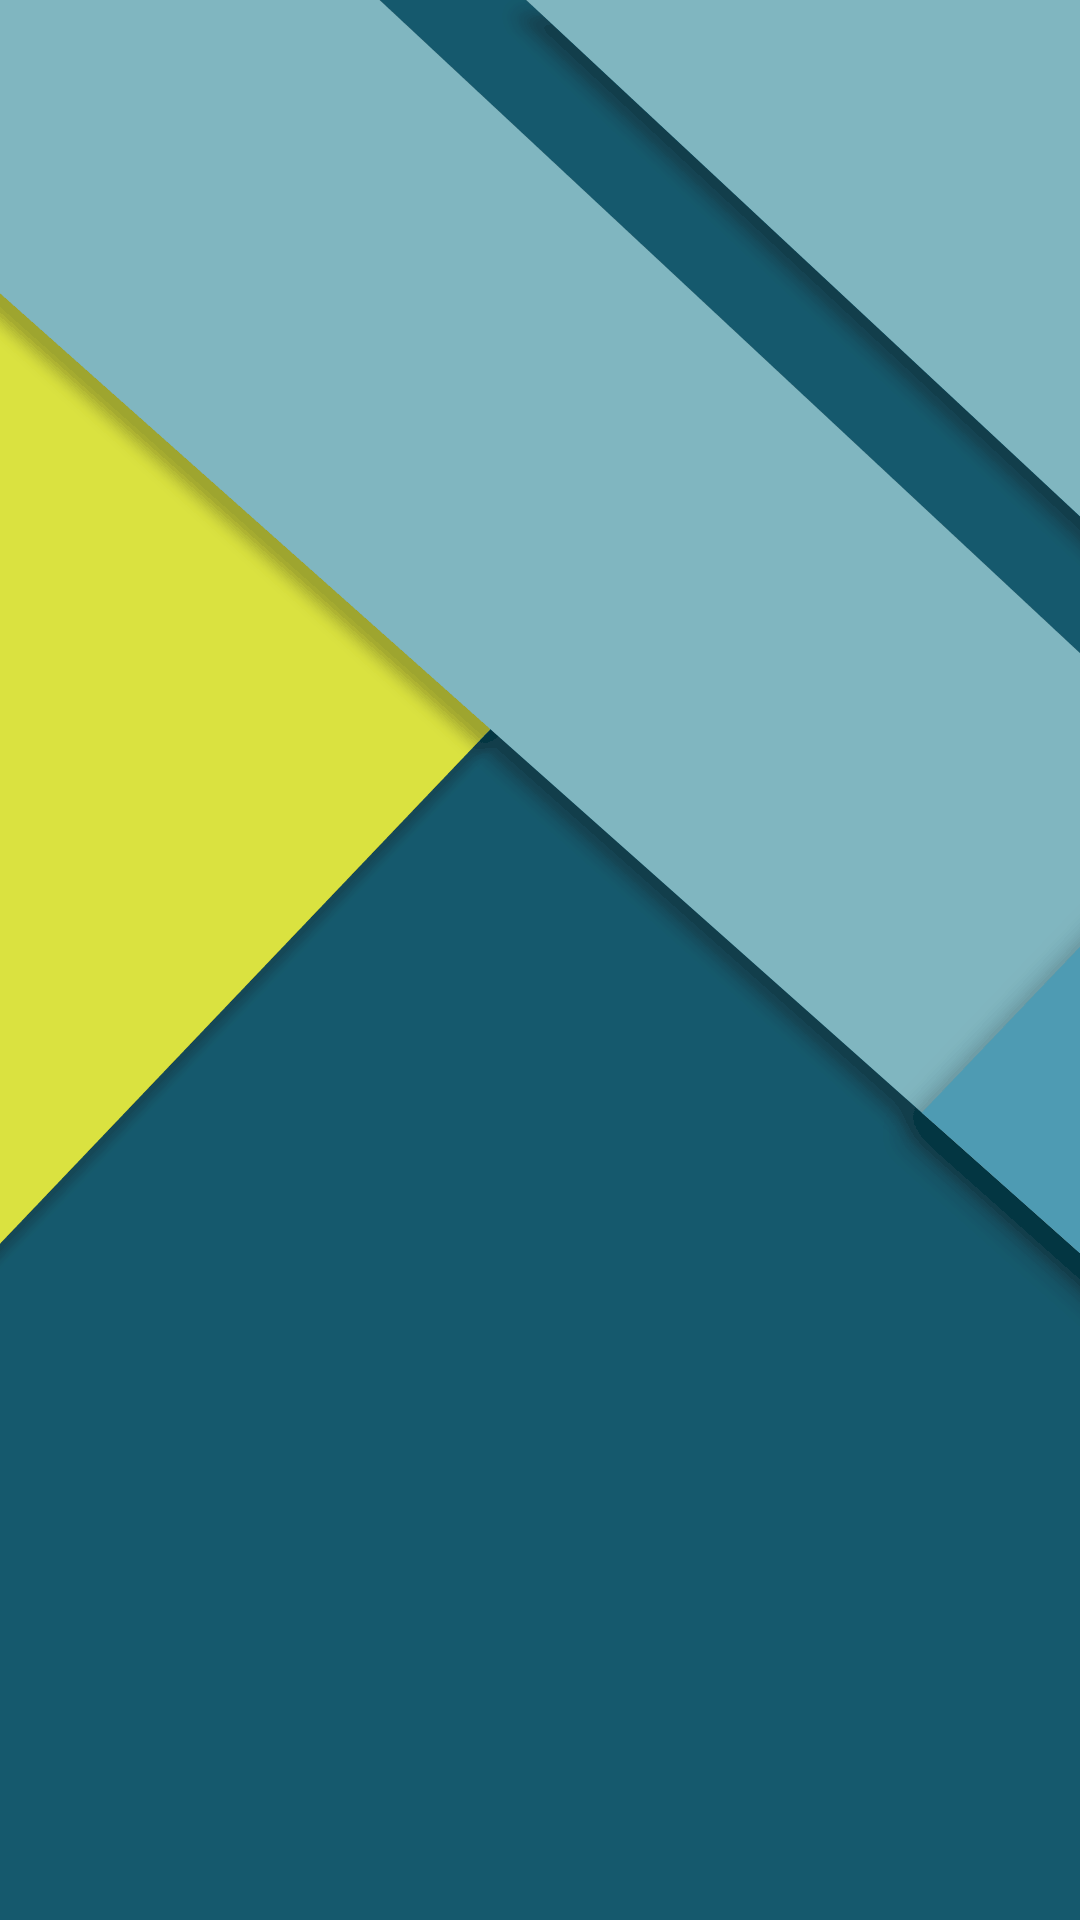 gionee s6s stock wallpapers ThemeFoxx 11 • Download Gionee S6S Stock Wallpapers